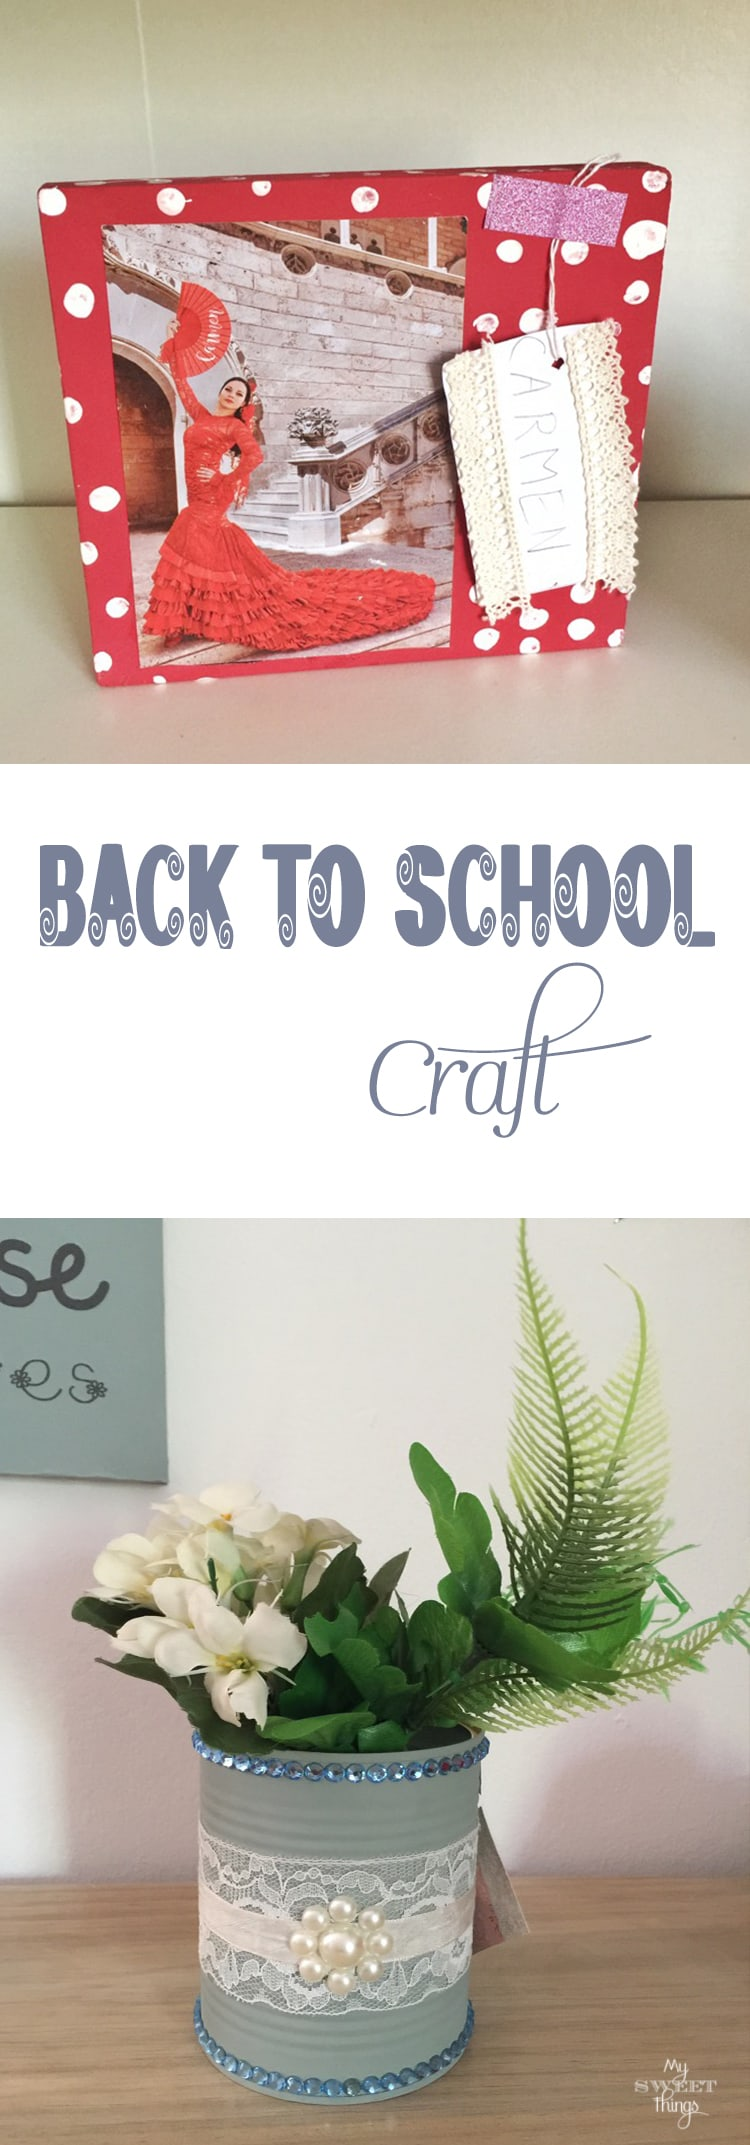 Back to School crafts Pin